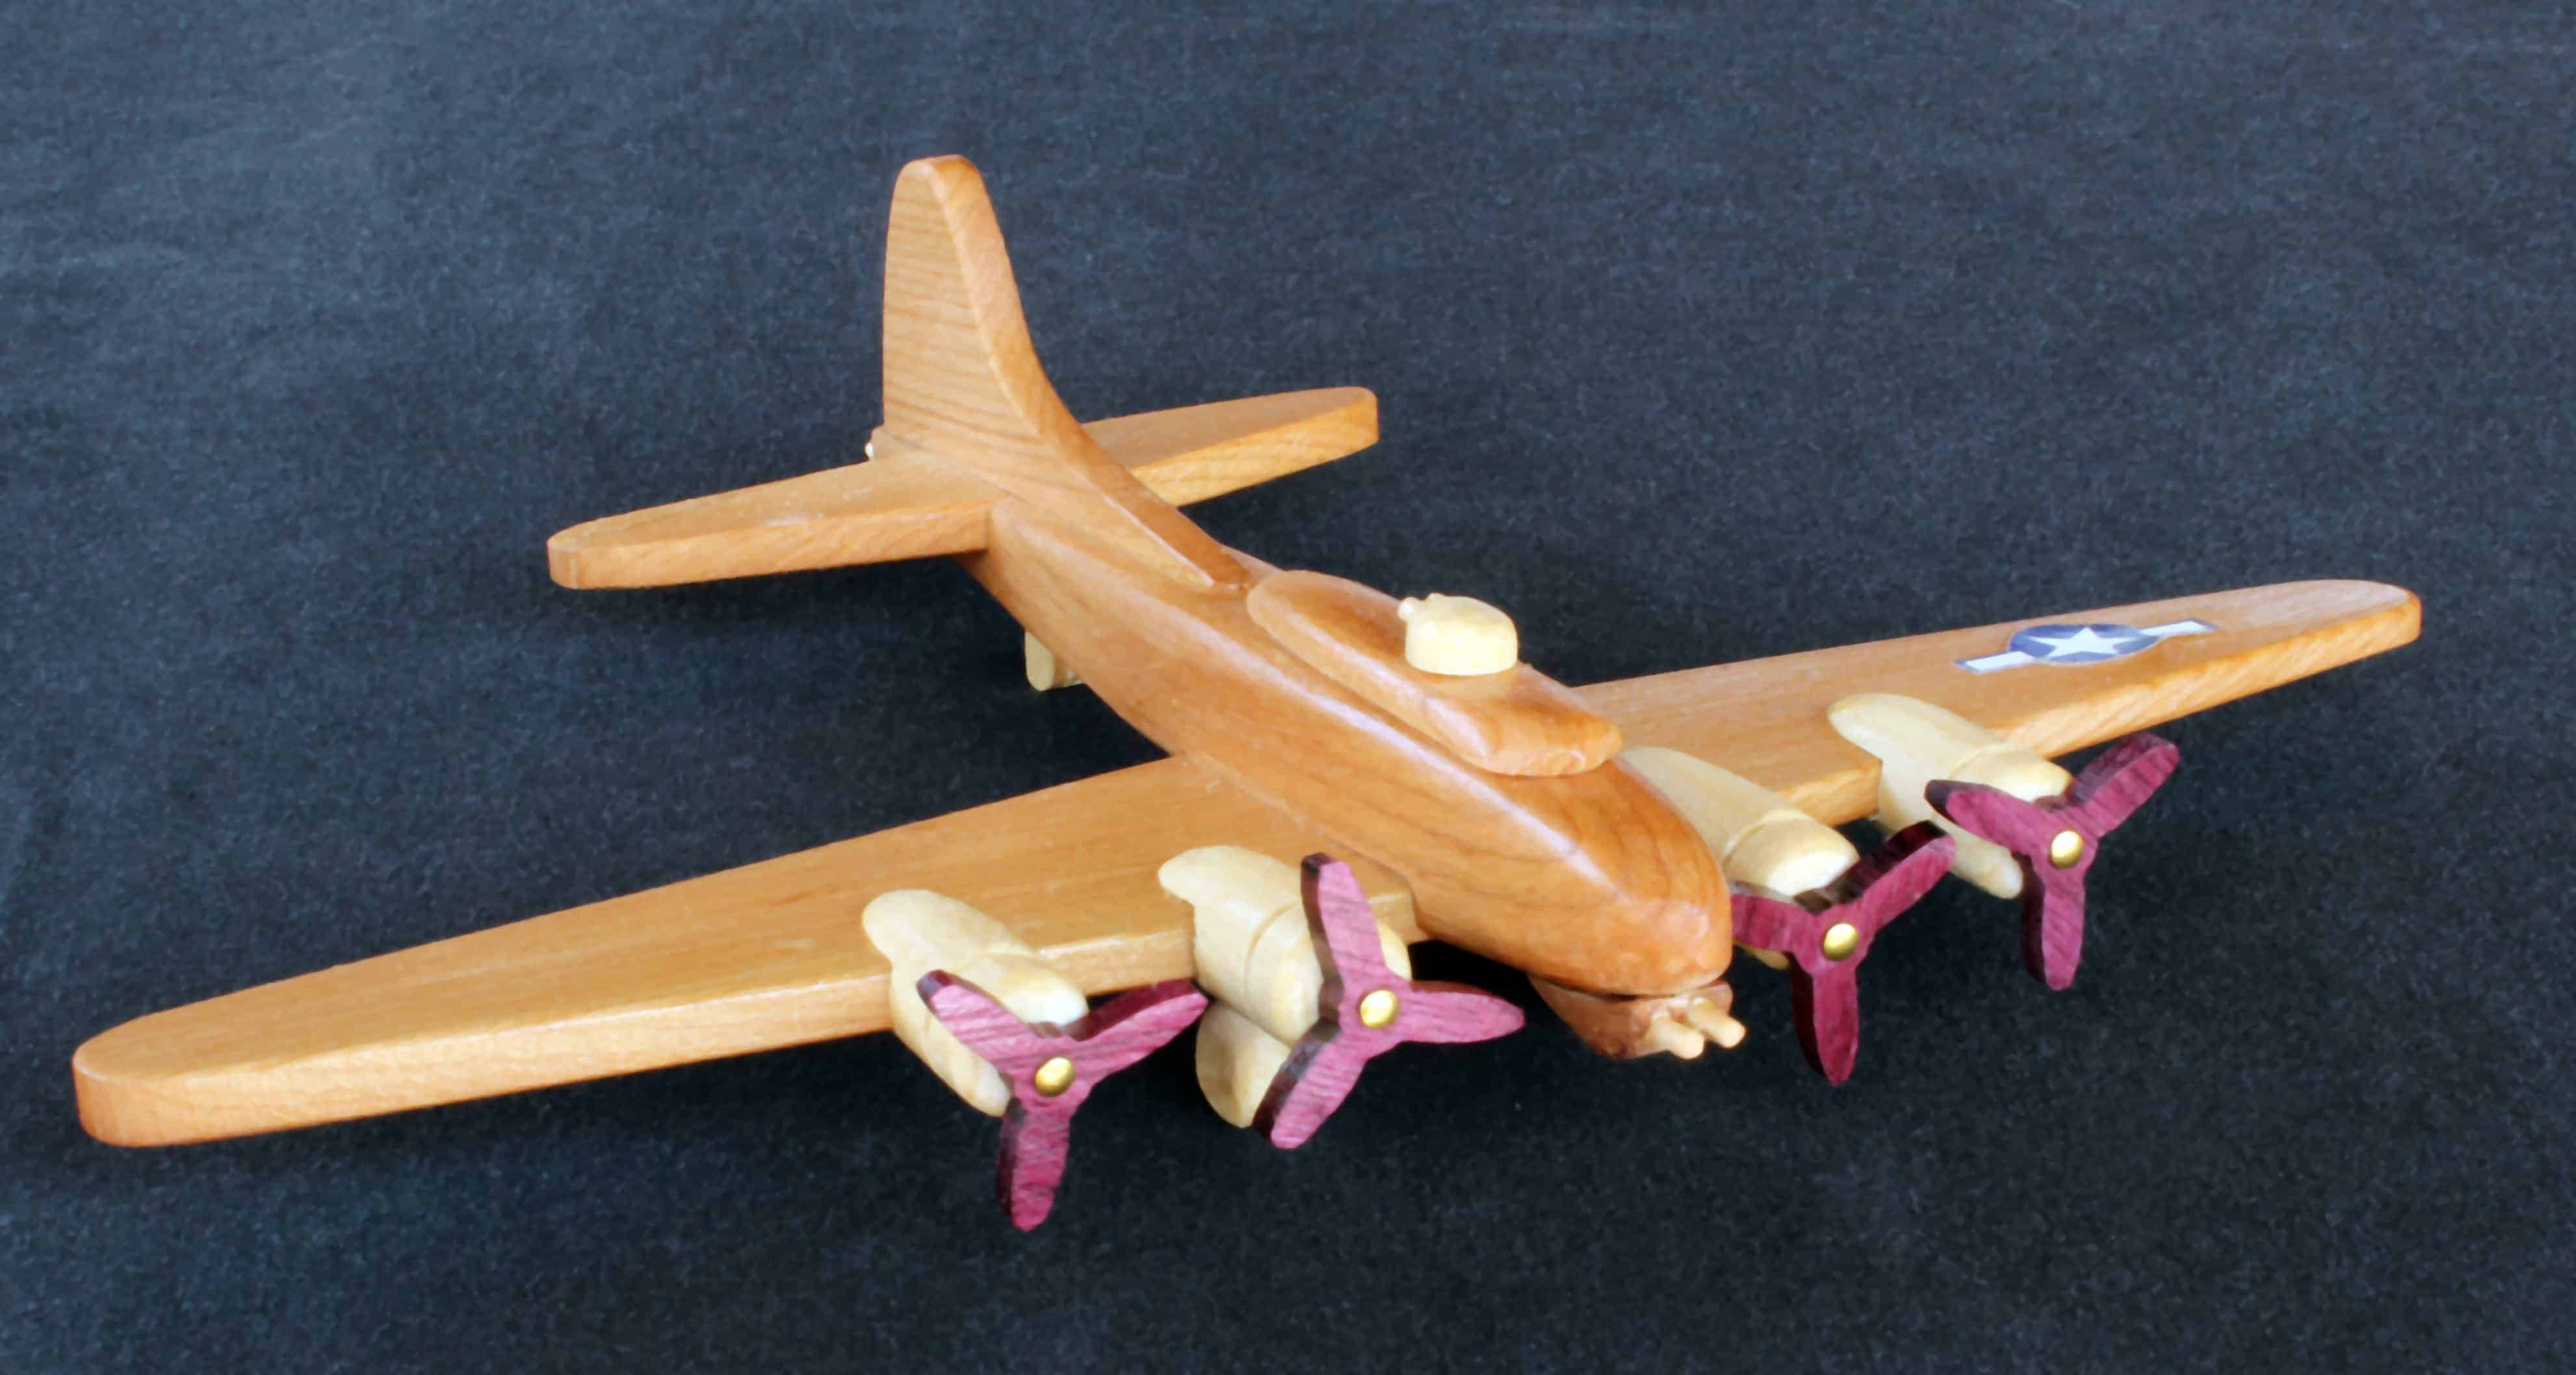 aviation history in wood